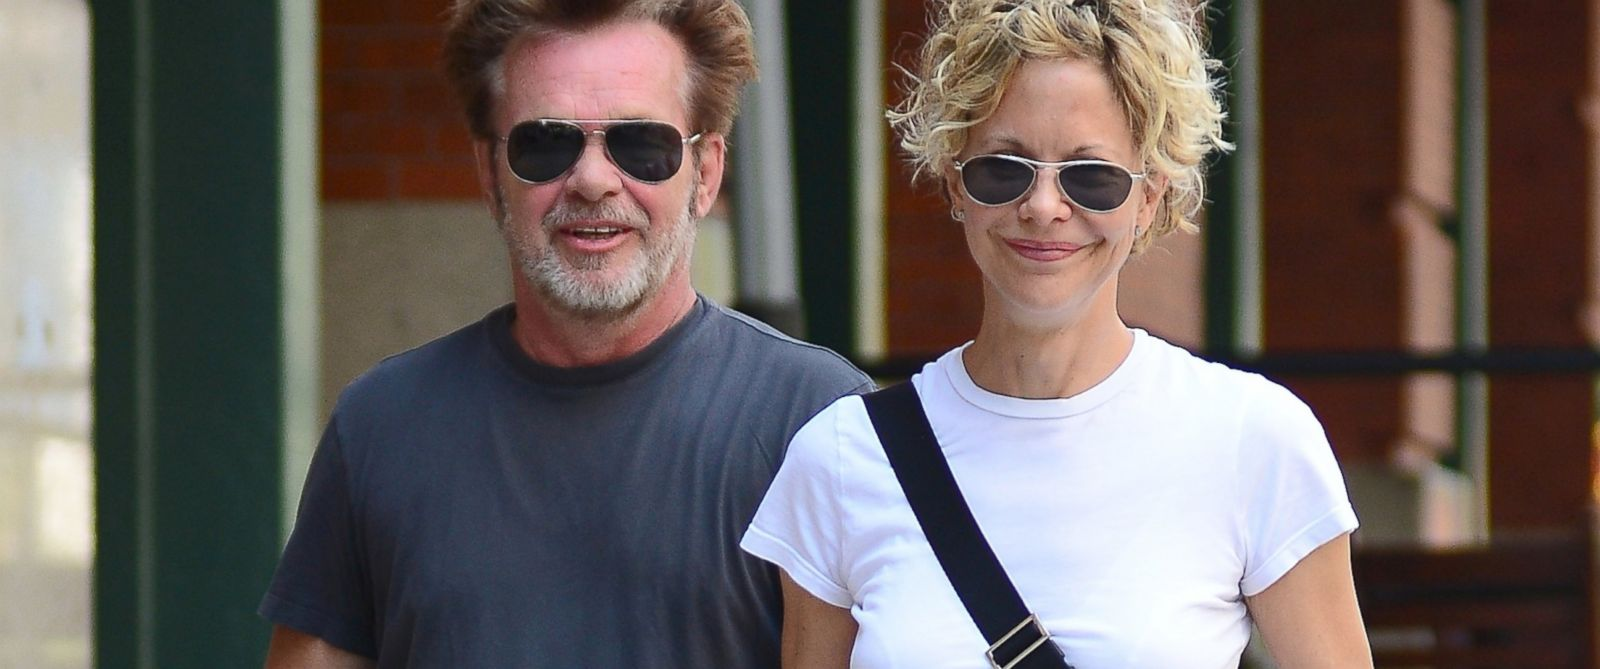 PHOTO: Meg Ryan and John Mellencamp are seen in Tribeca on June 24, 2013 in New York City.